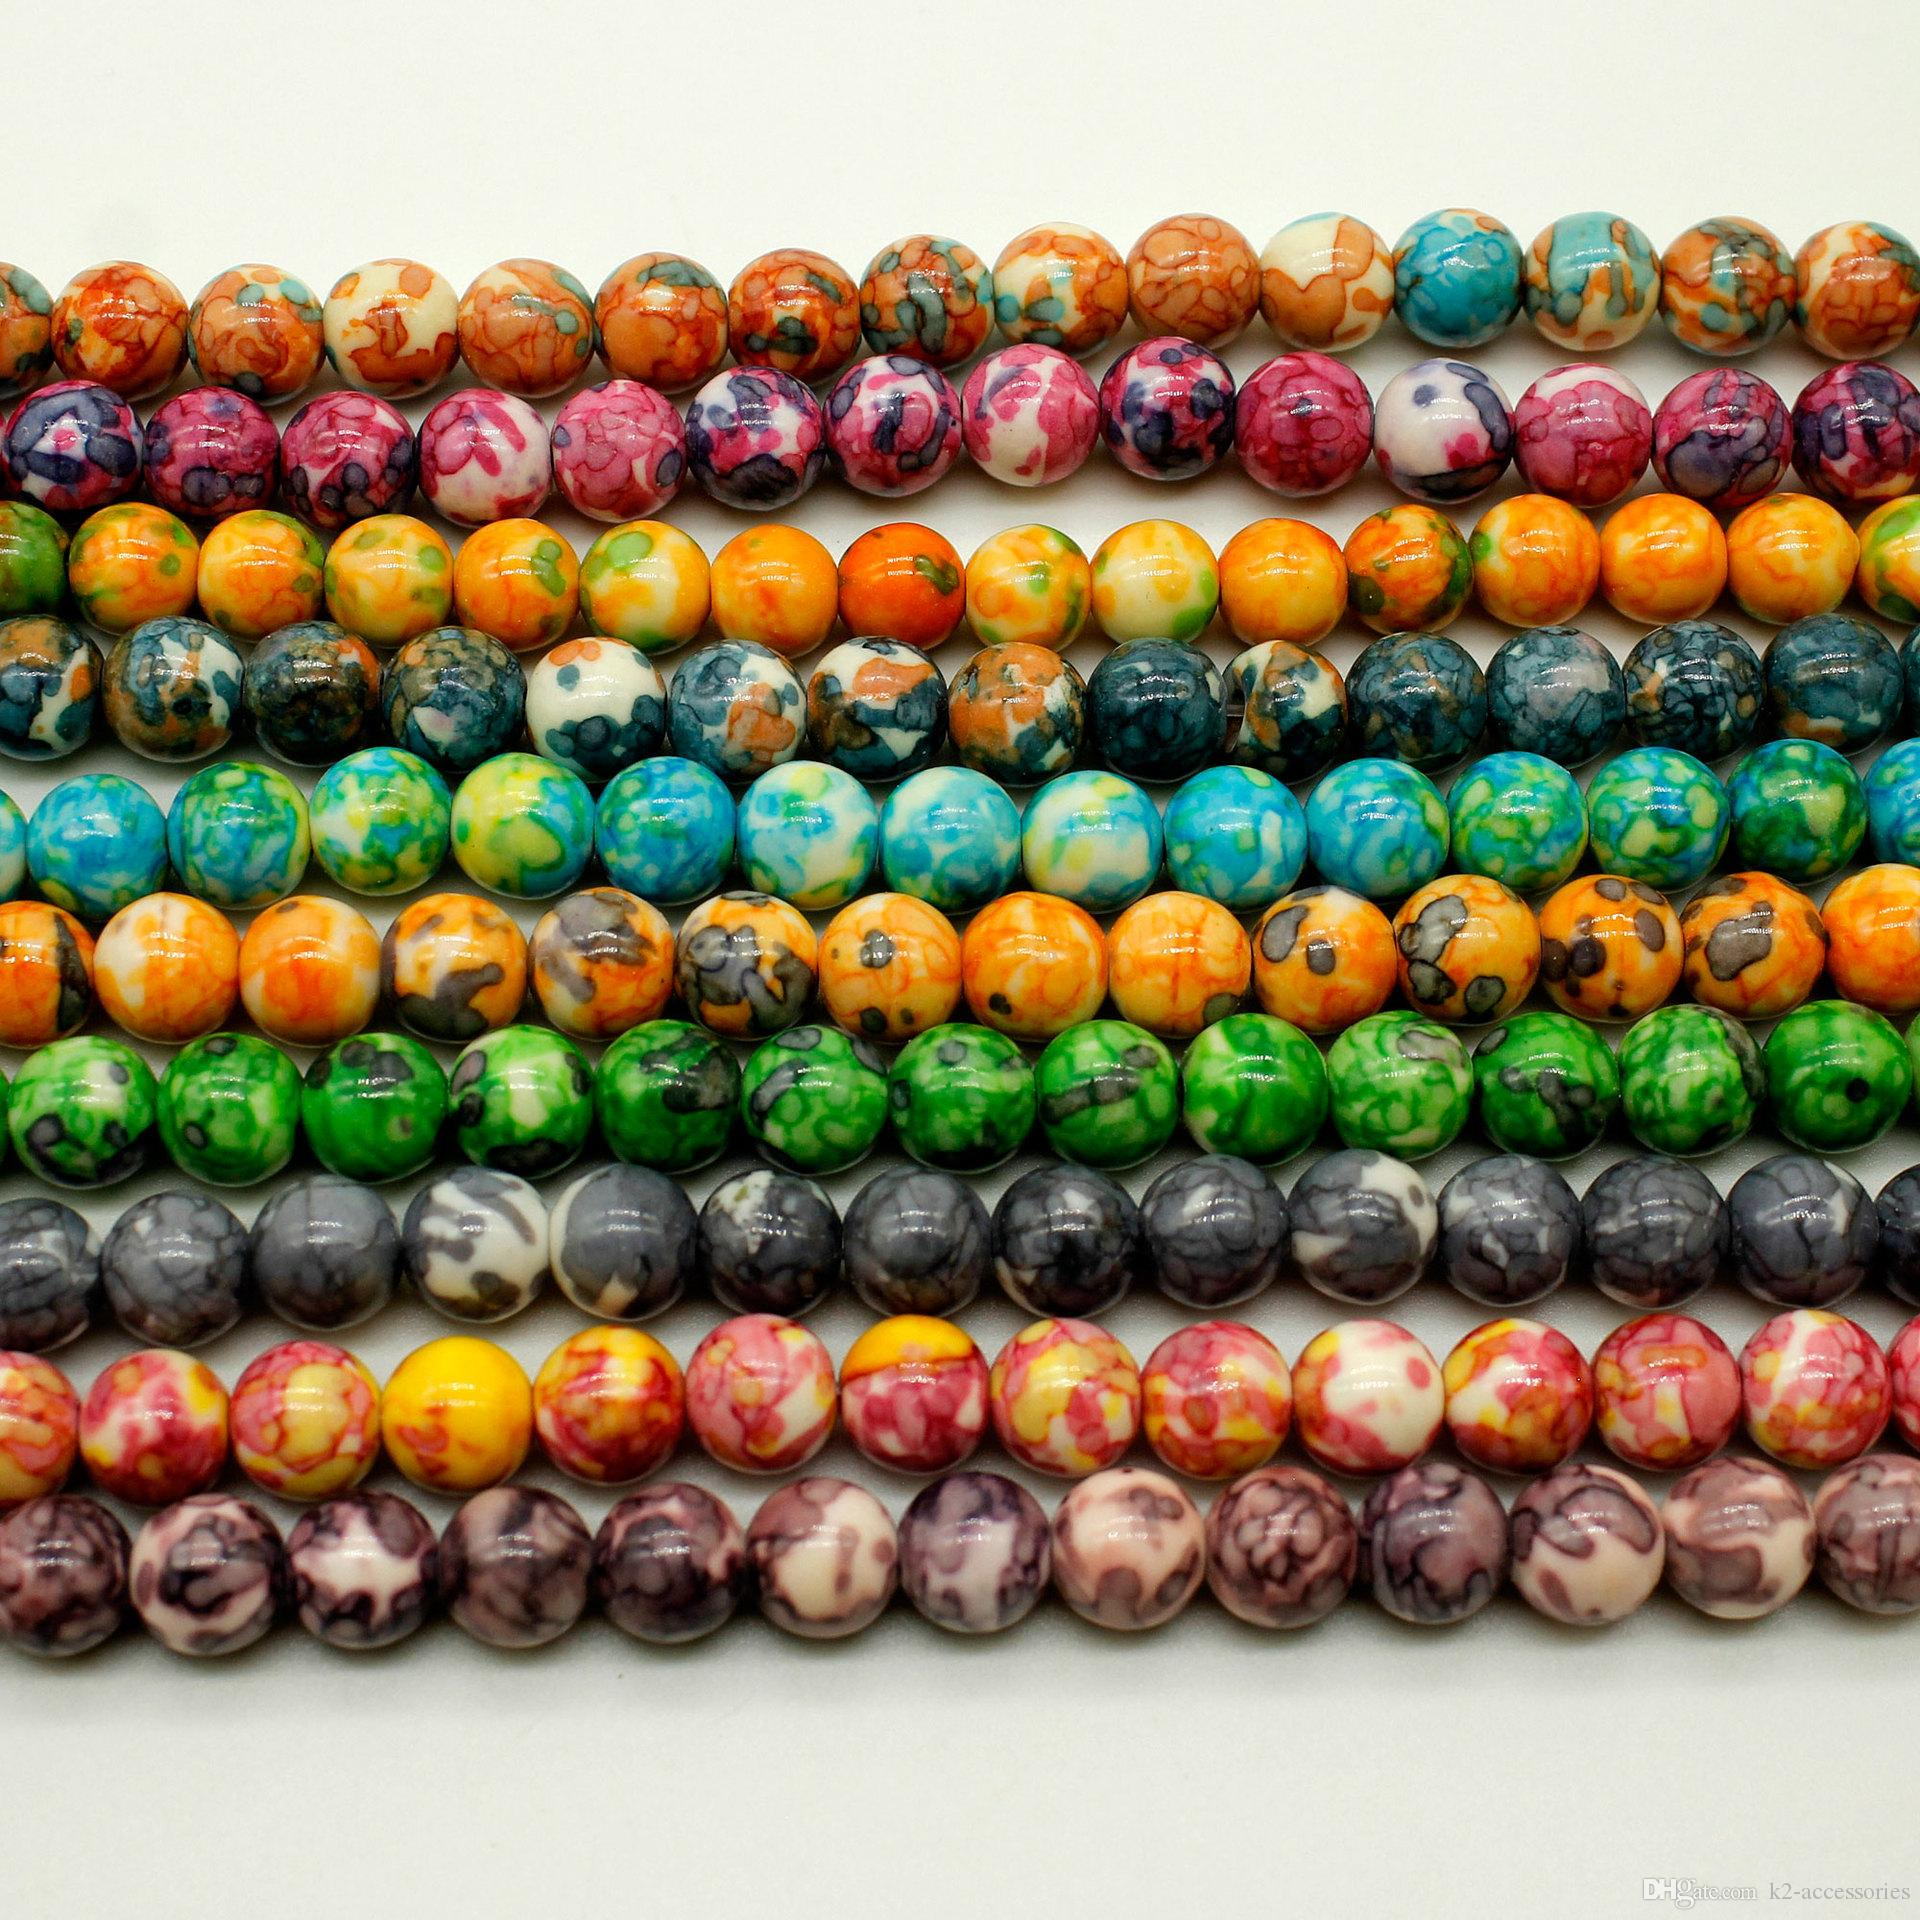 65pcs/lot 6mm Multi Color RAIN stone Beads Natural Stone Round Loose Beads DIY Jewelry Bracelet Making colorful Stone Bead